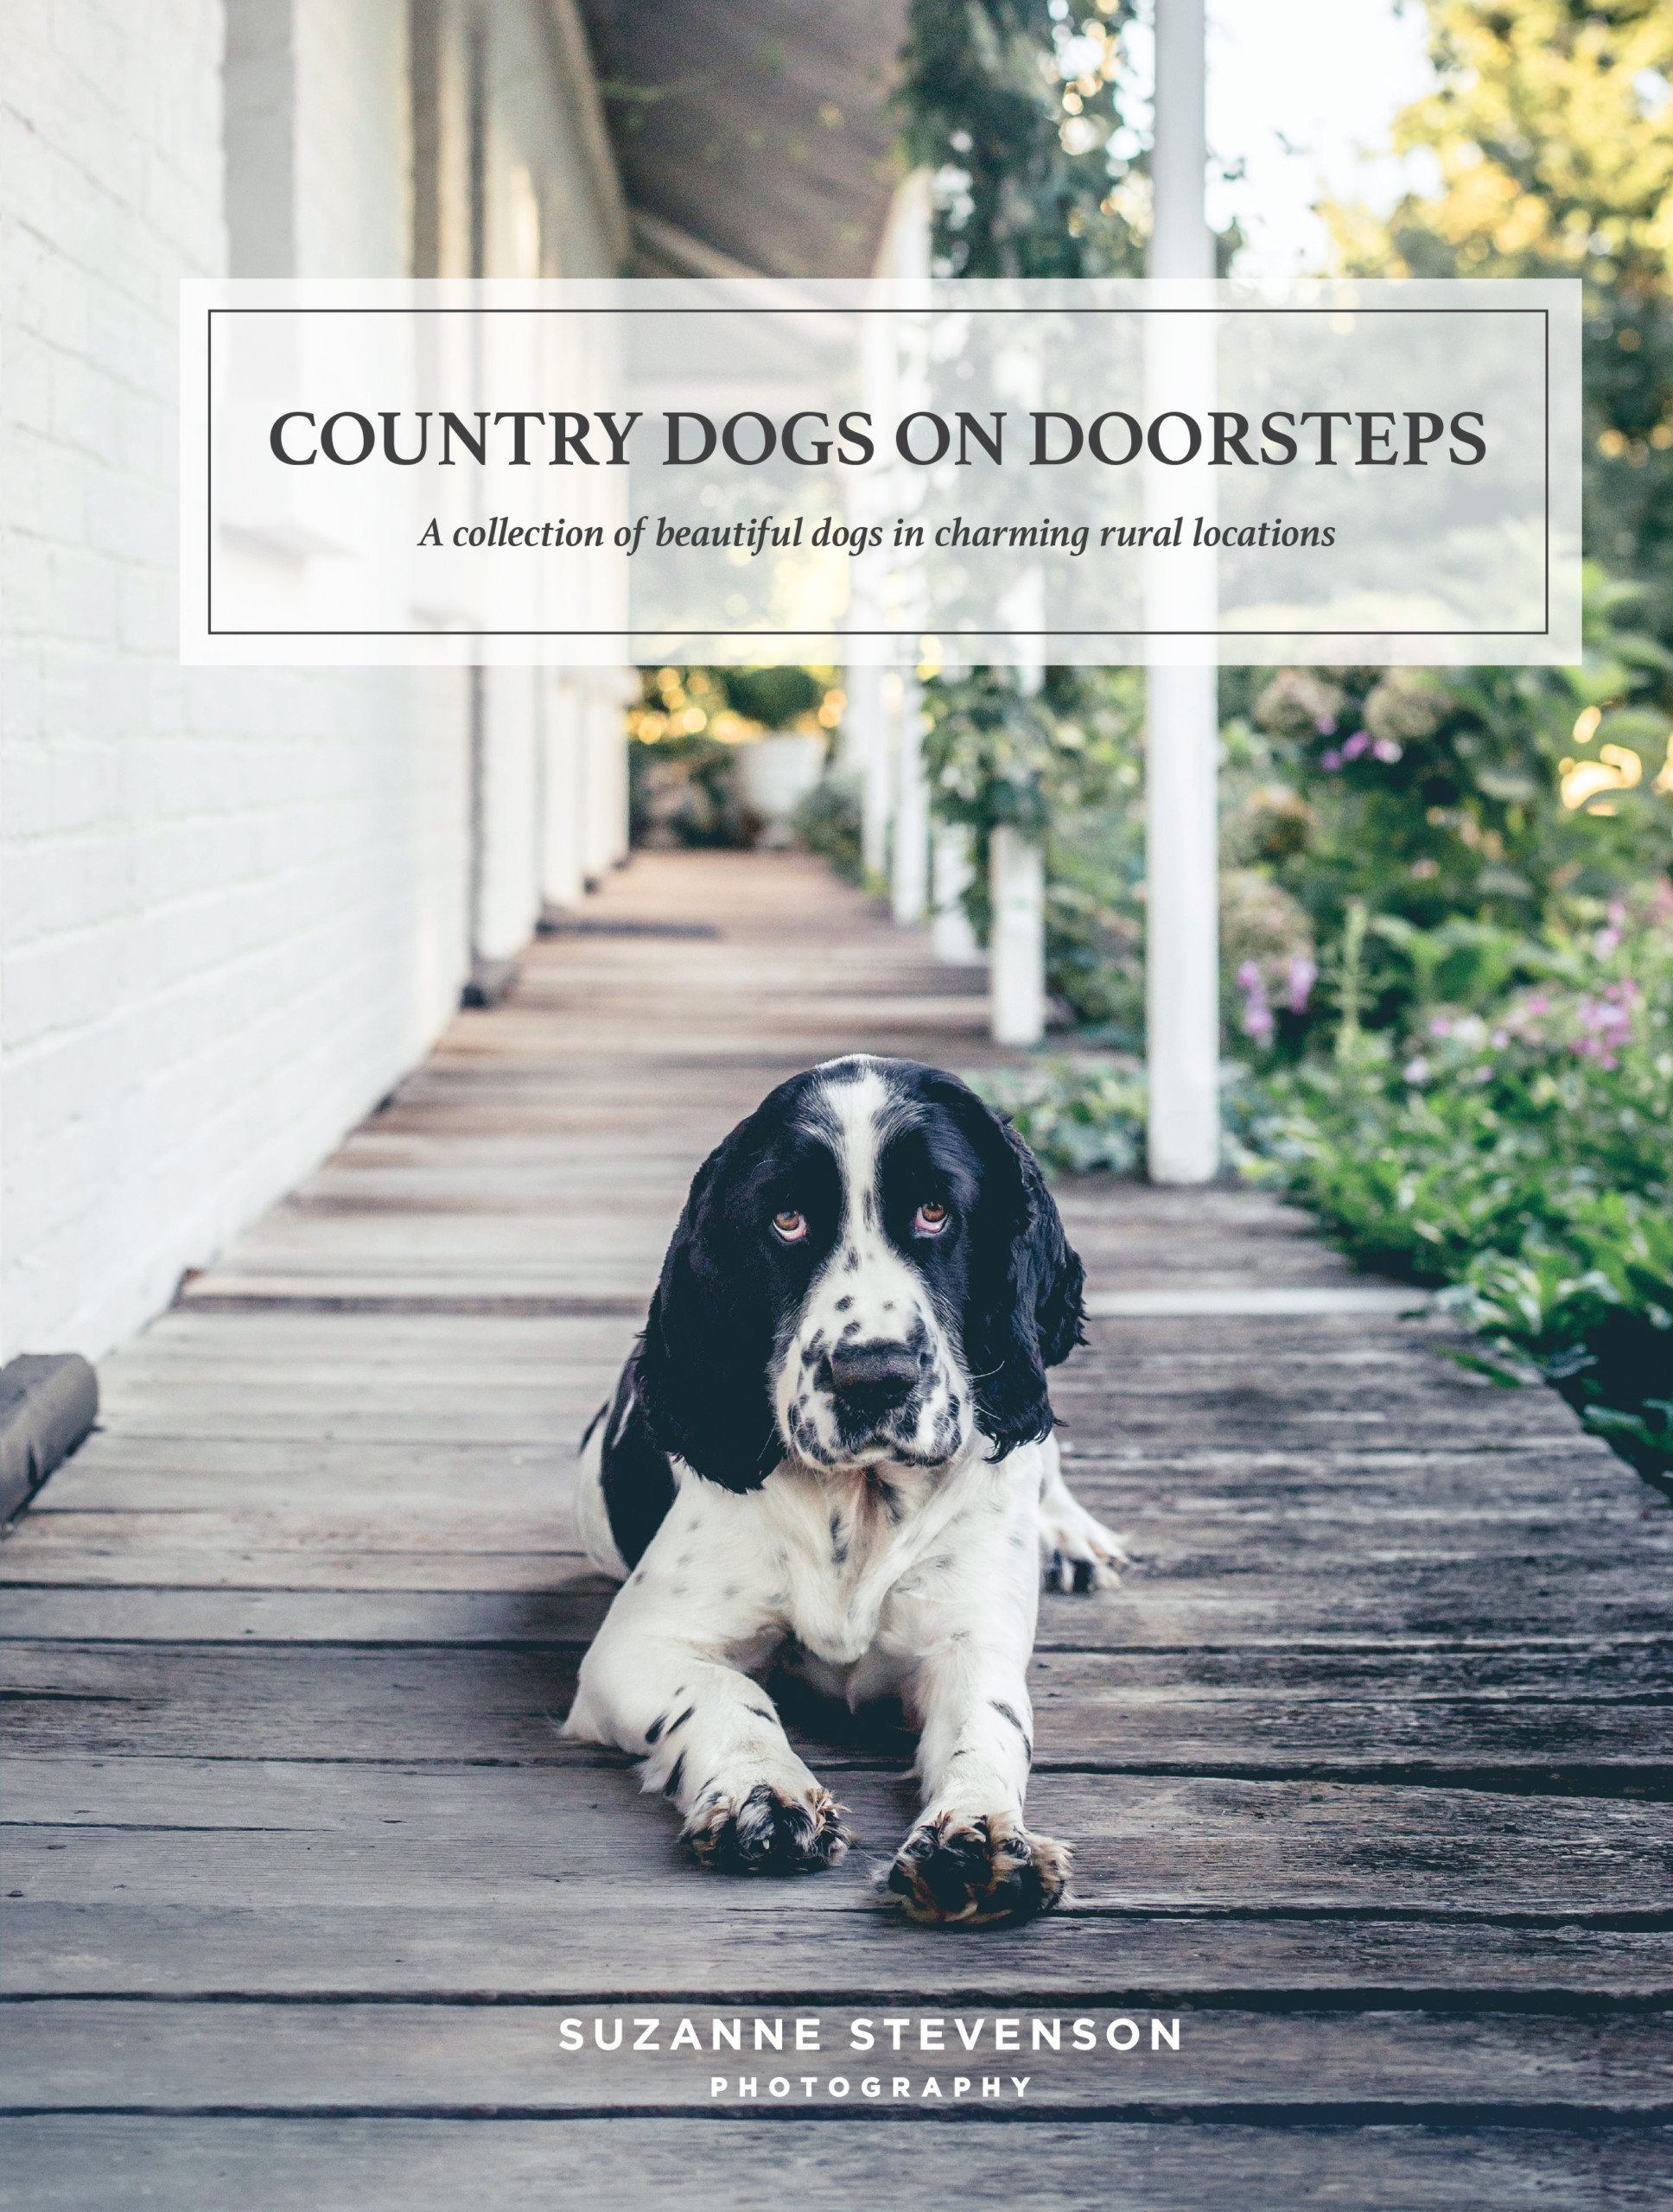 Country Dogs on Doorsteps by Suzanne Stevenson